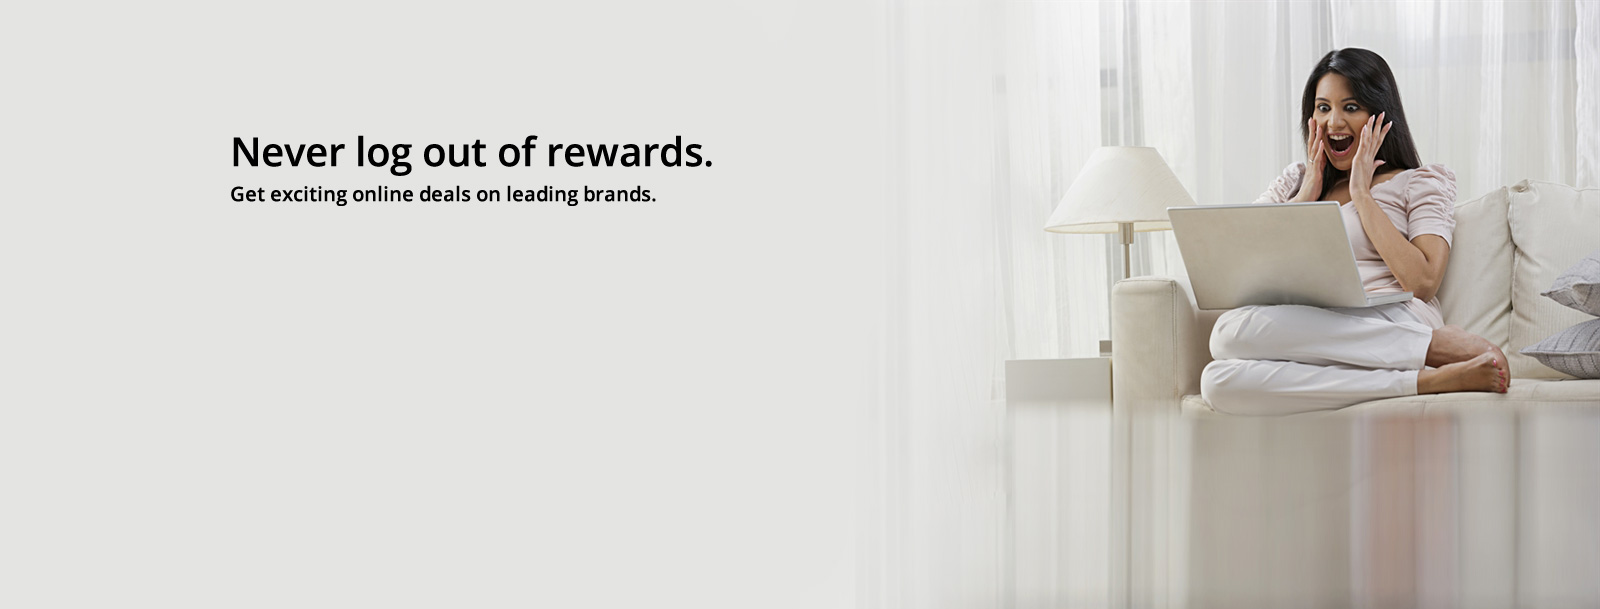 SBI Credit Card Offers